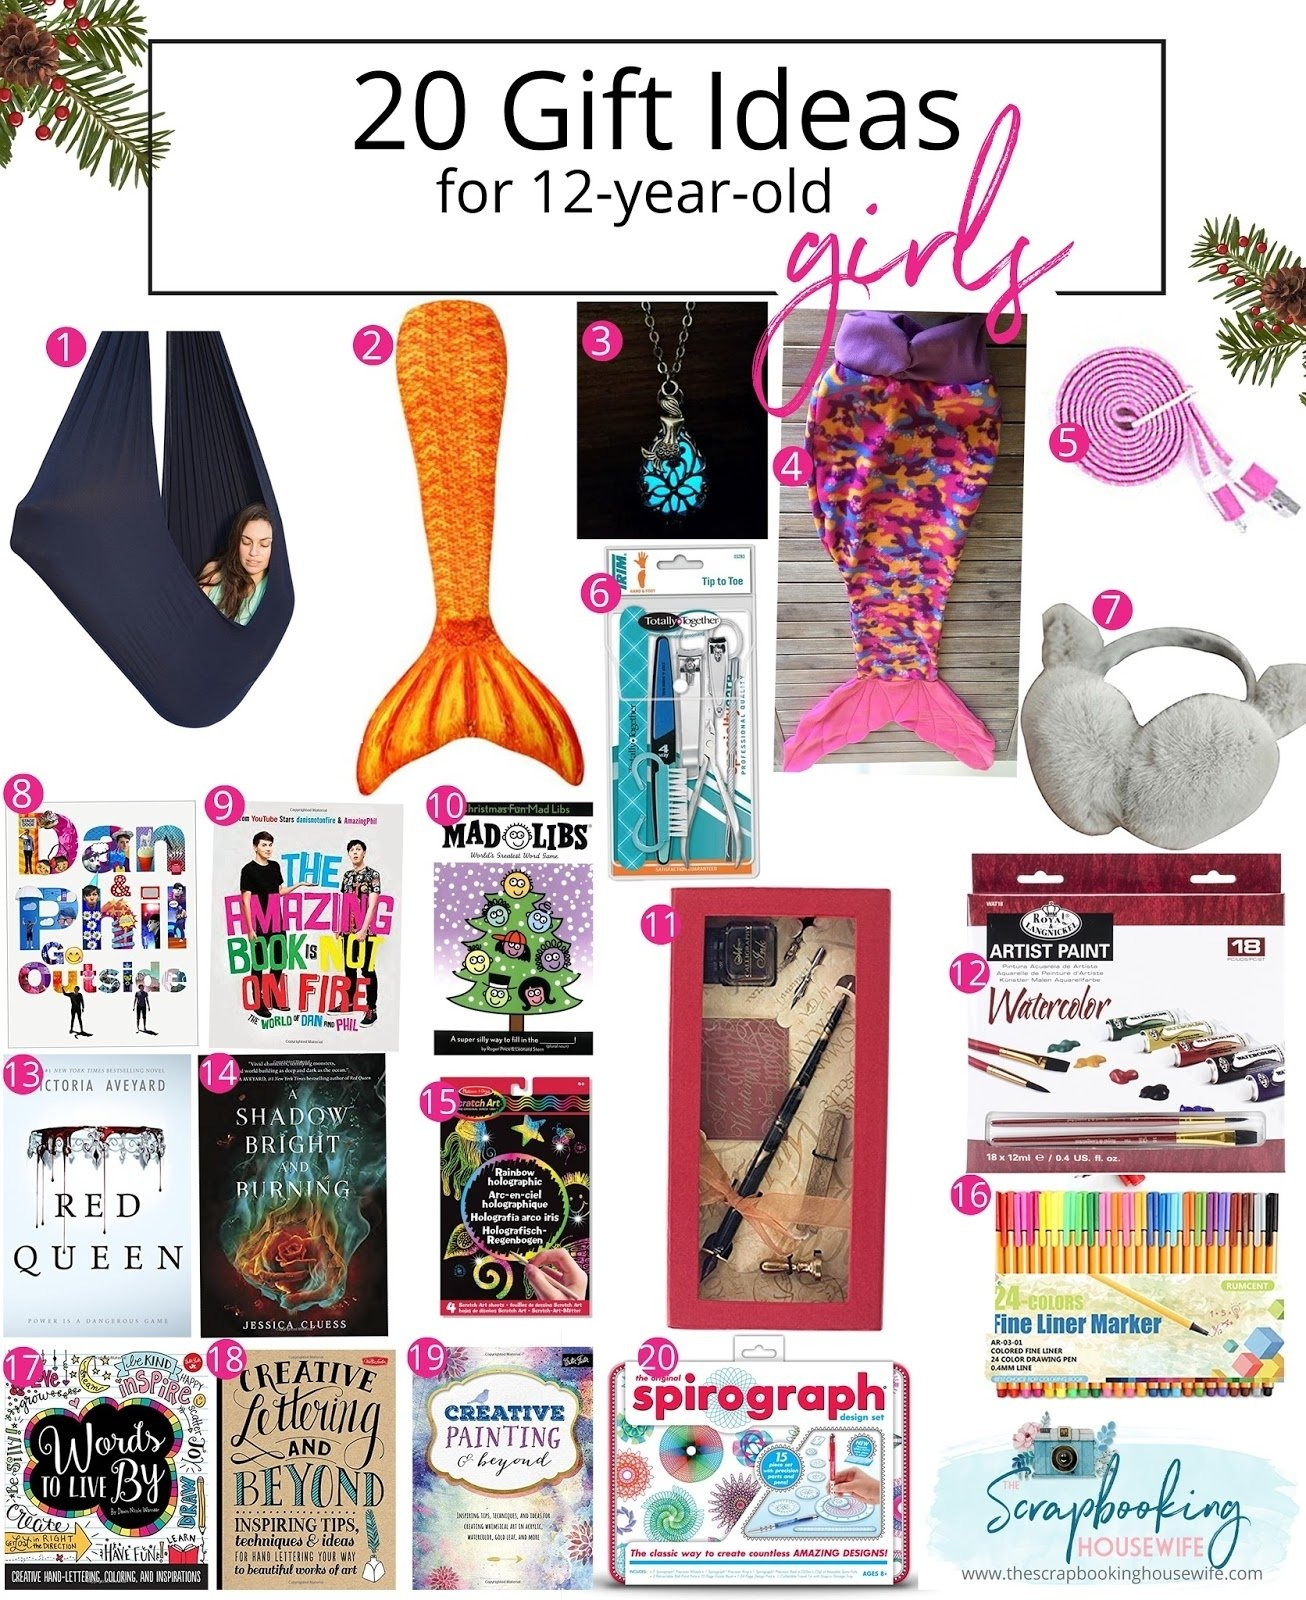 10 Great Gift Ideas For 12 Year Old Girls ellabella designs 20 gift ideas for 12 year old tween girls 1 2021